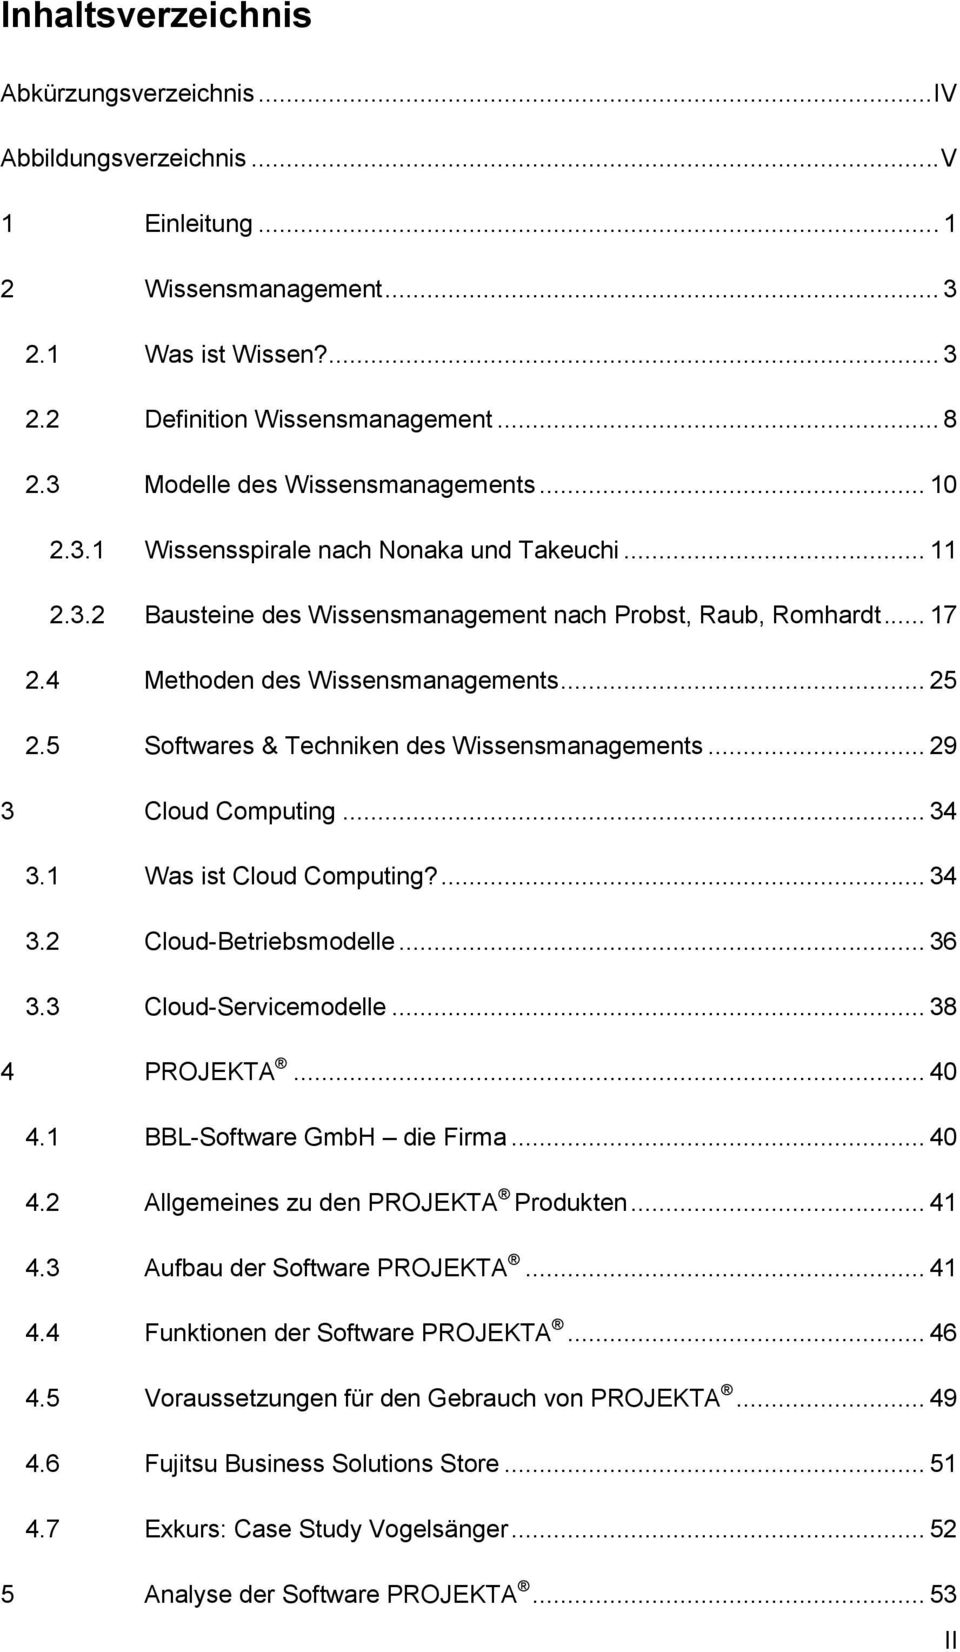 .. 25 2.5 Softwares & Techniken des Wissensmanagements... 29 3 Cloud Computing... 34 3.1 Was ist Cloud Computing?... 34 3.2 Cloud-Betriebsmodelle... 36 3.3 Cloud-Servicemodelle... 38 4 PROJEKTA... 40 4.